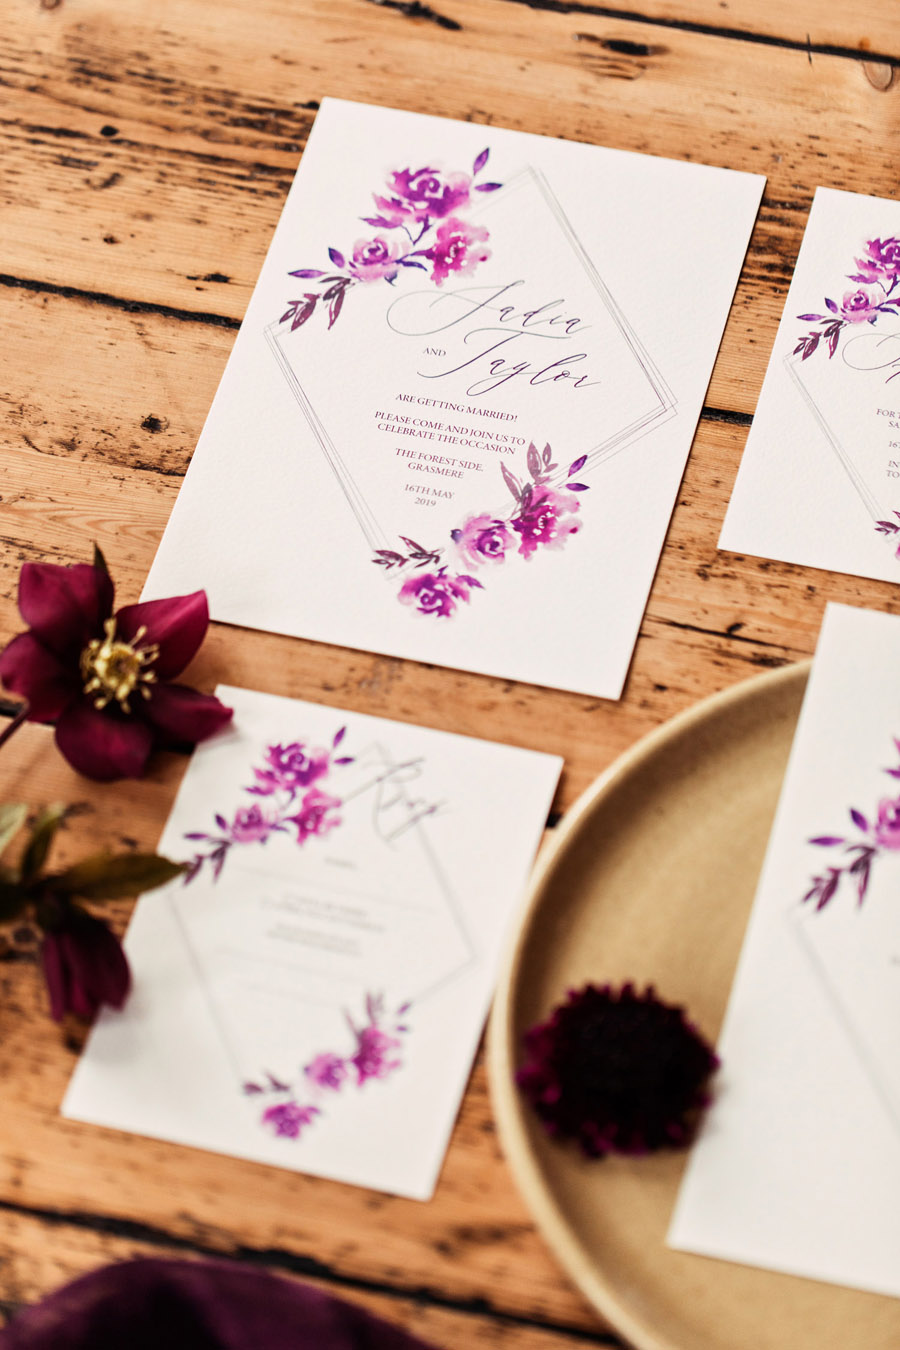 Purple wedding style inspiration with calligraphy By Moon and Tide, photo credit Camilla Lucinda Photography (13)